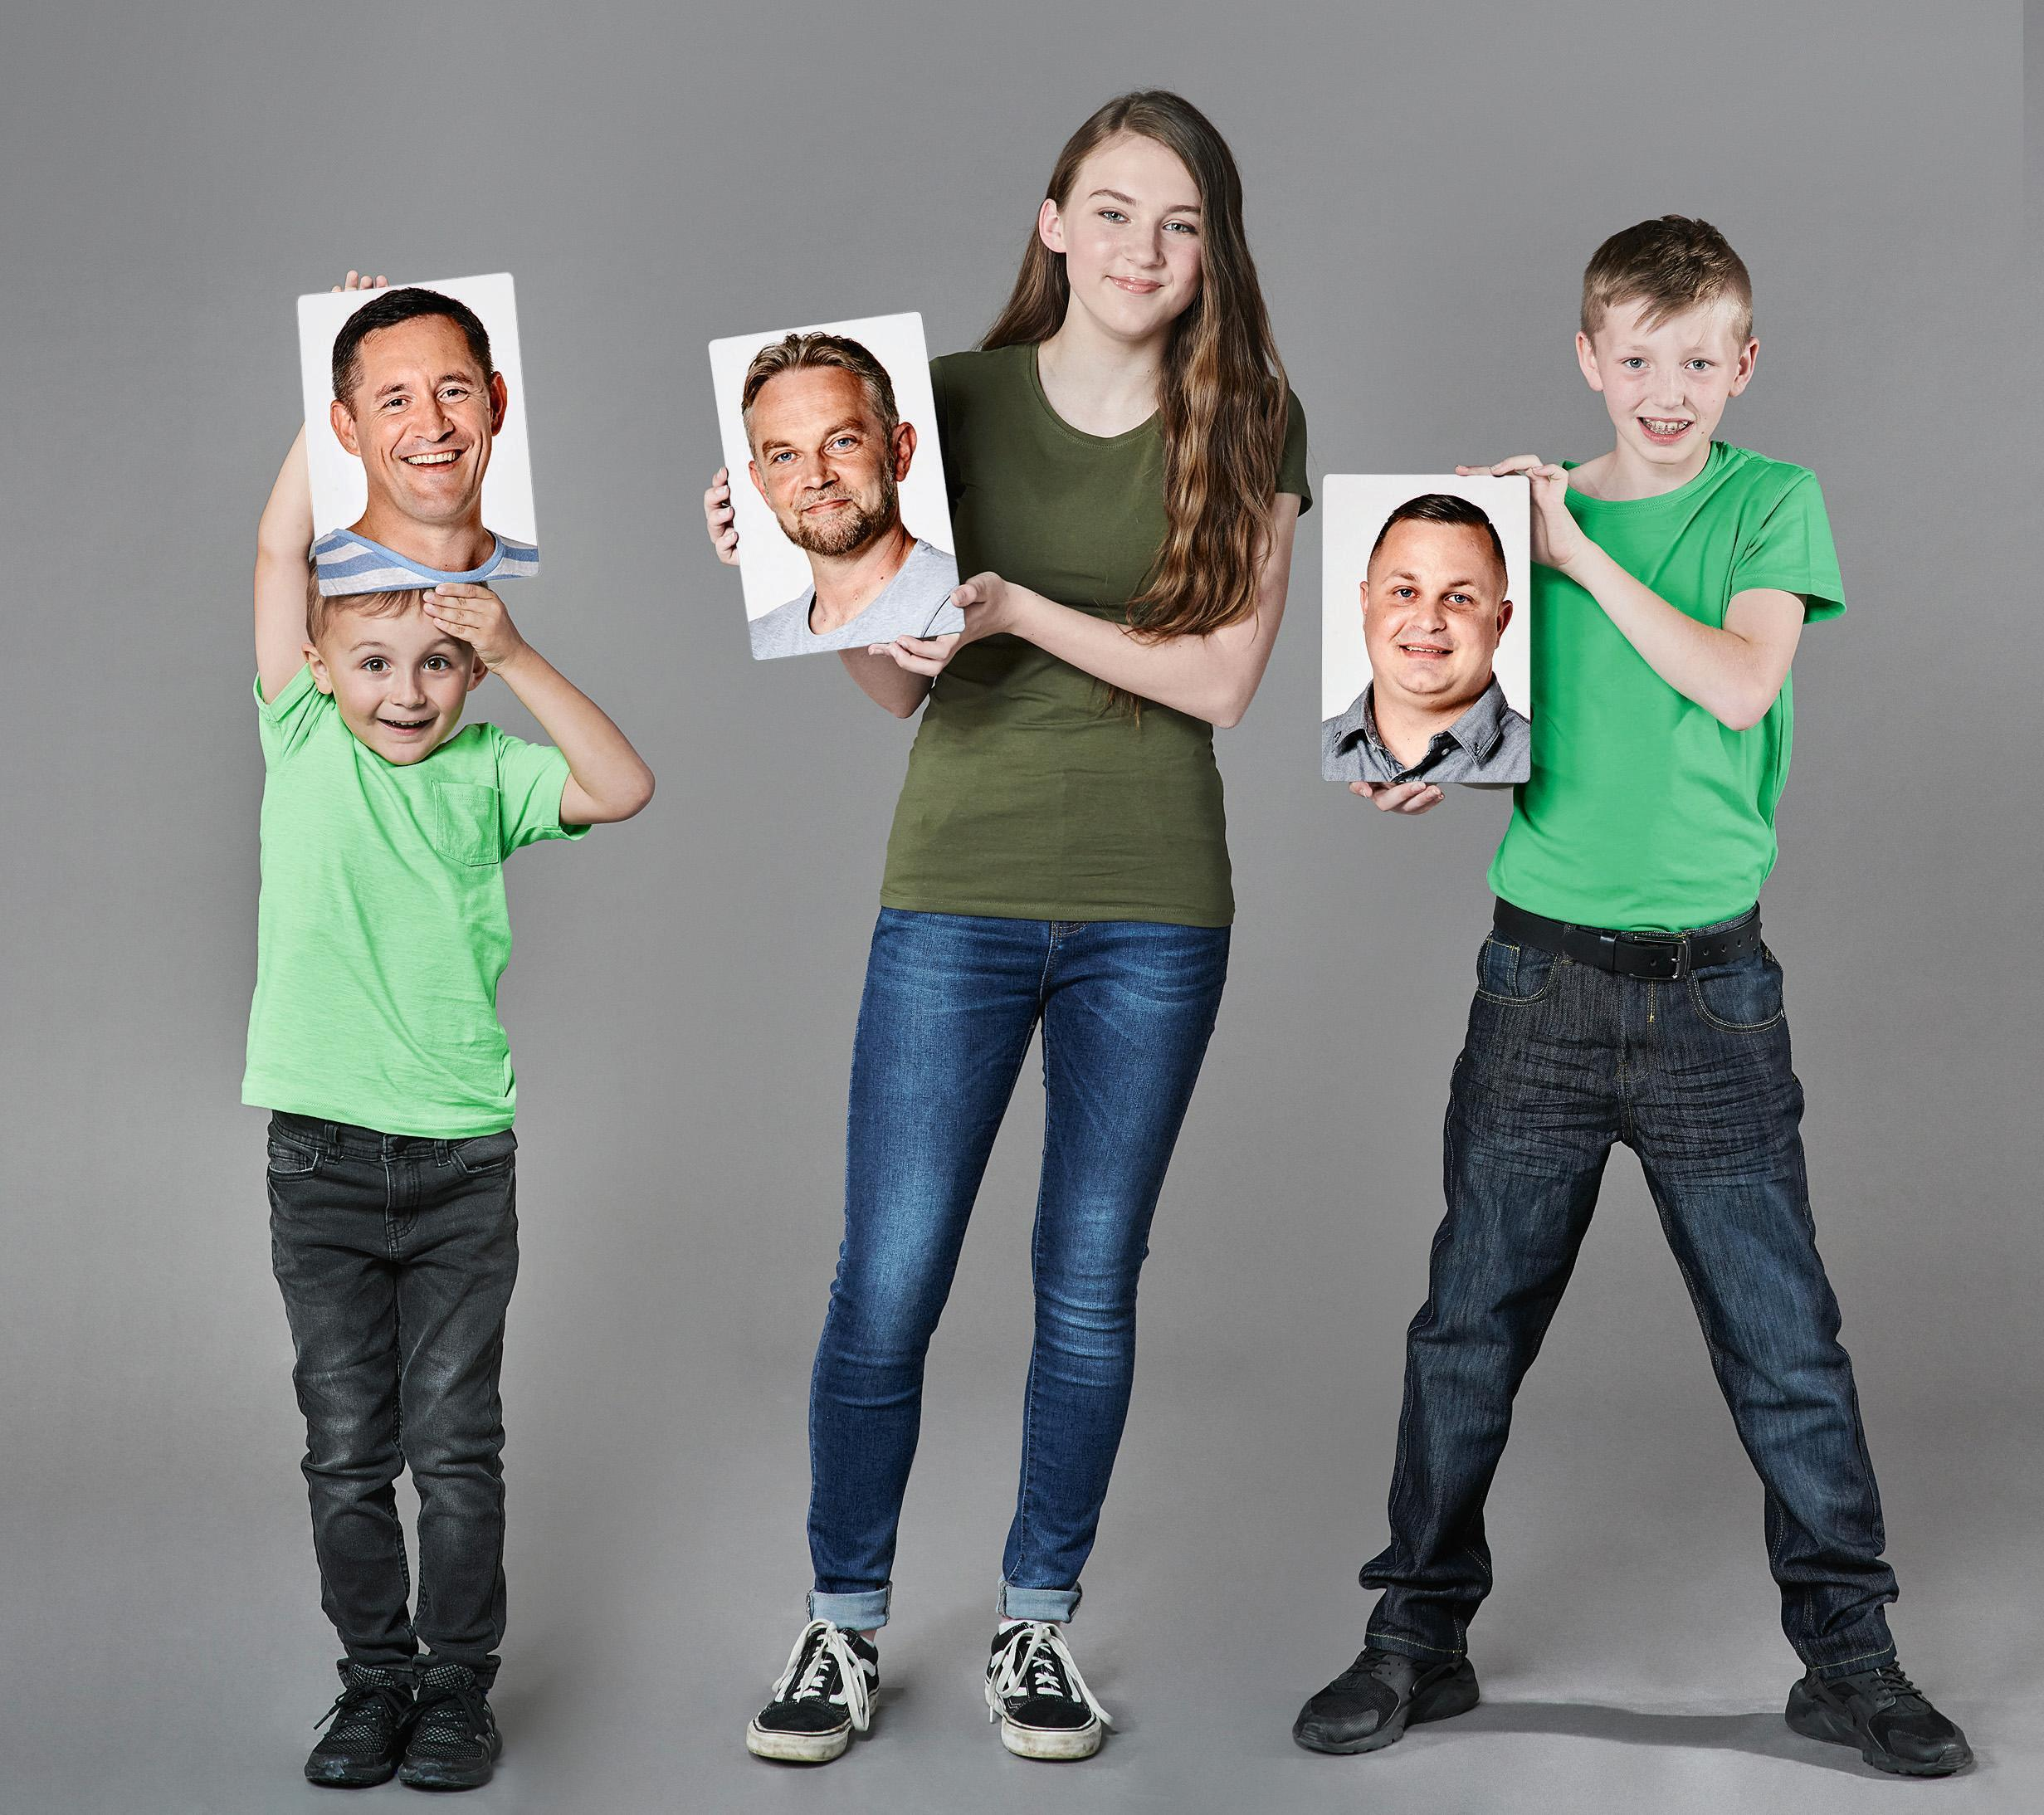 Three children might have the perfect match for single ladies looking for love — their dad